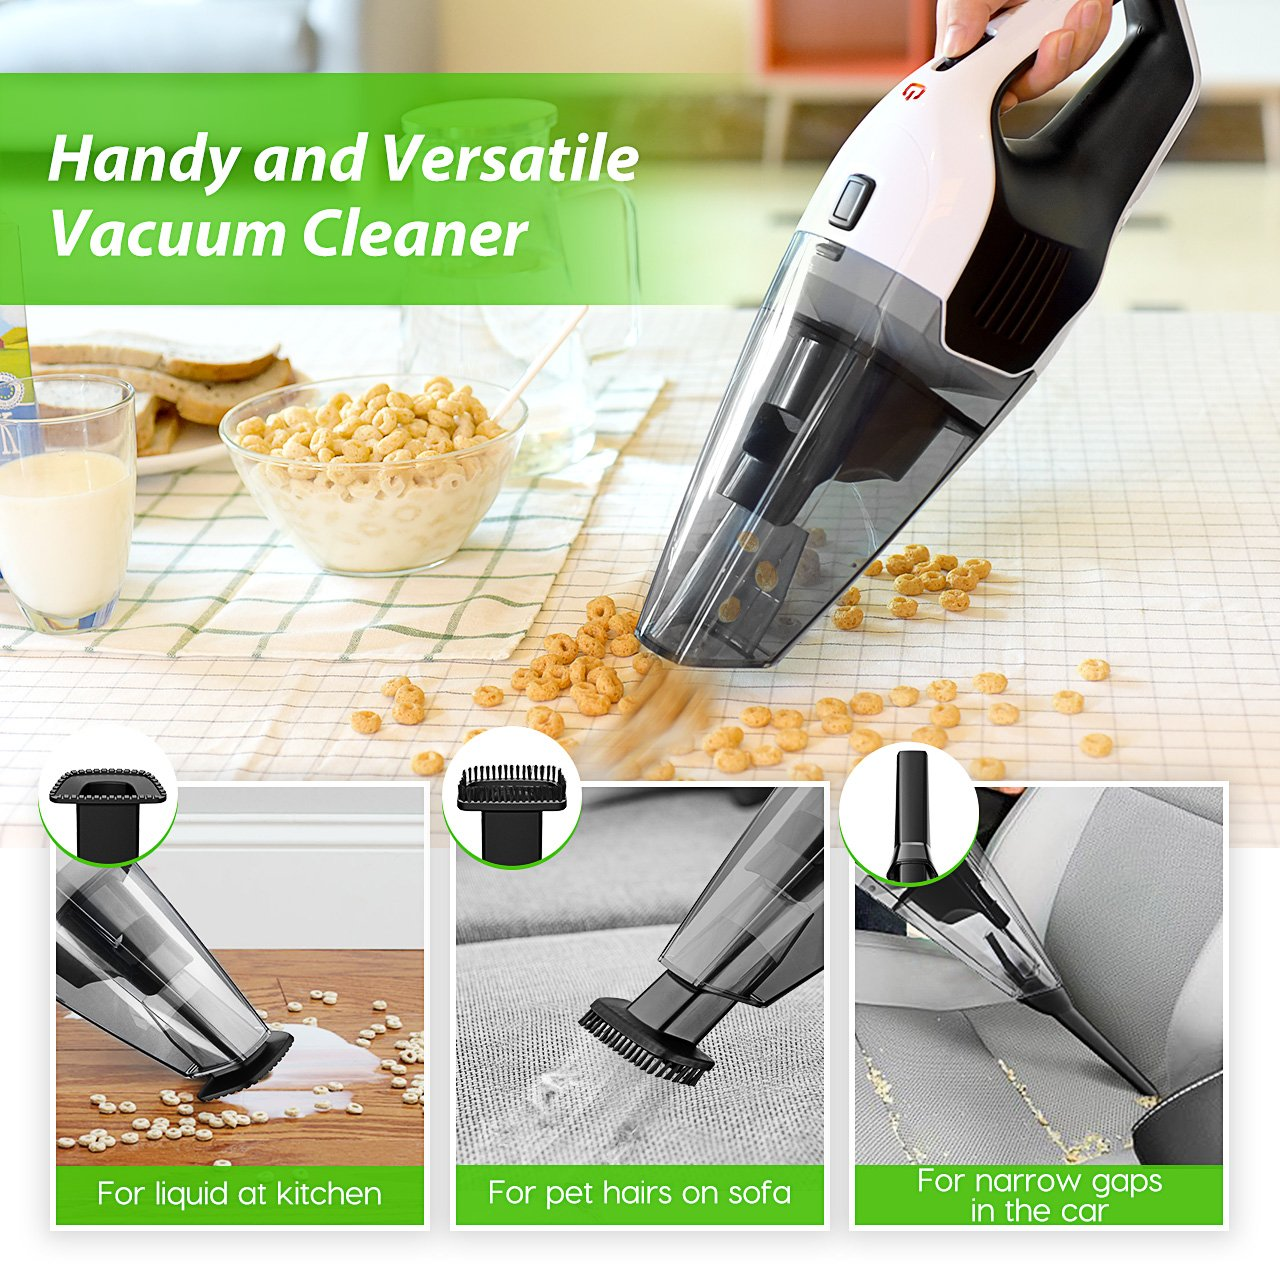 Handheld Vacuum Cordless, Holife 6KPA Hand Vacuum Cleaner Rechargeable Hand Vac, 14.8V Lithium with Quick Charge, Lightweight Wet Dry Vacuum for Home Pet Hair Car Cleaning (Upgraded Version) by HoLife (Image #8)